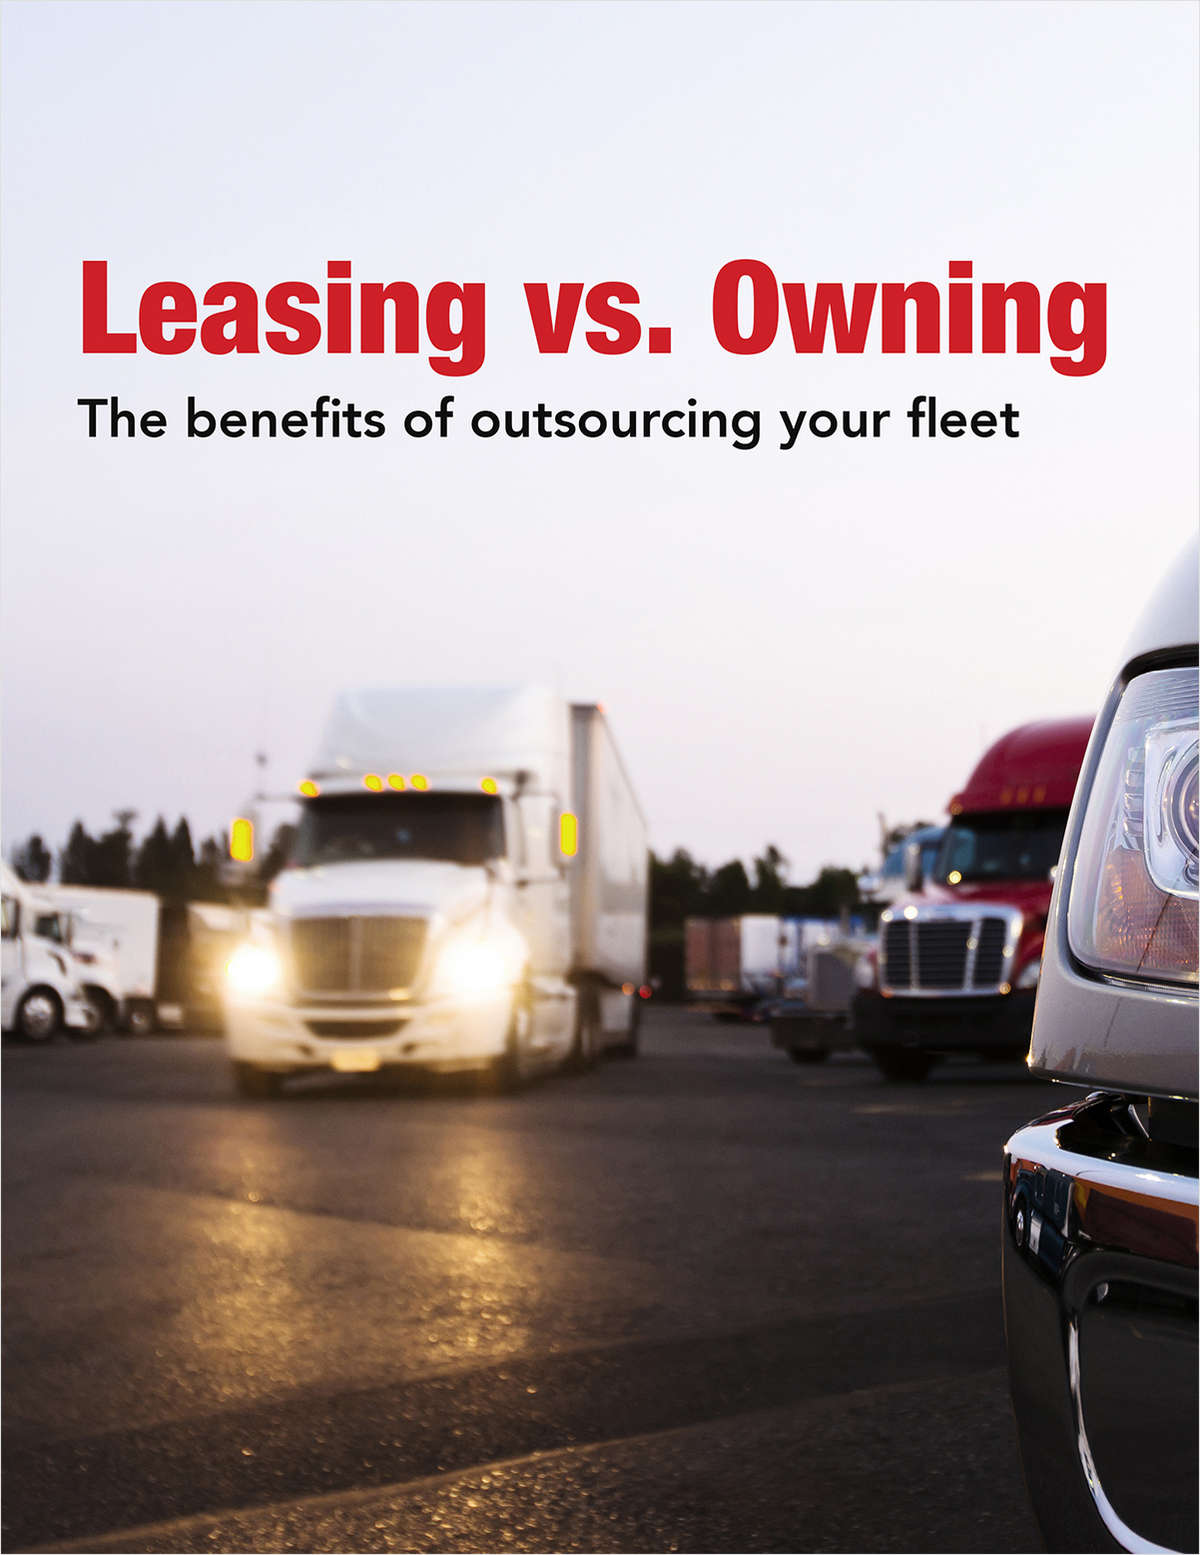 Leasing vs. Owning: The Benefits of Outsourcing Your Fleet